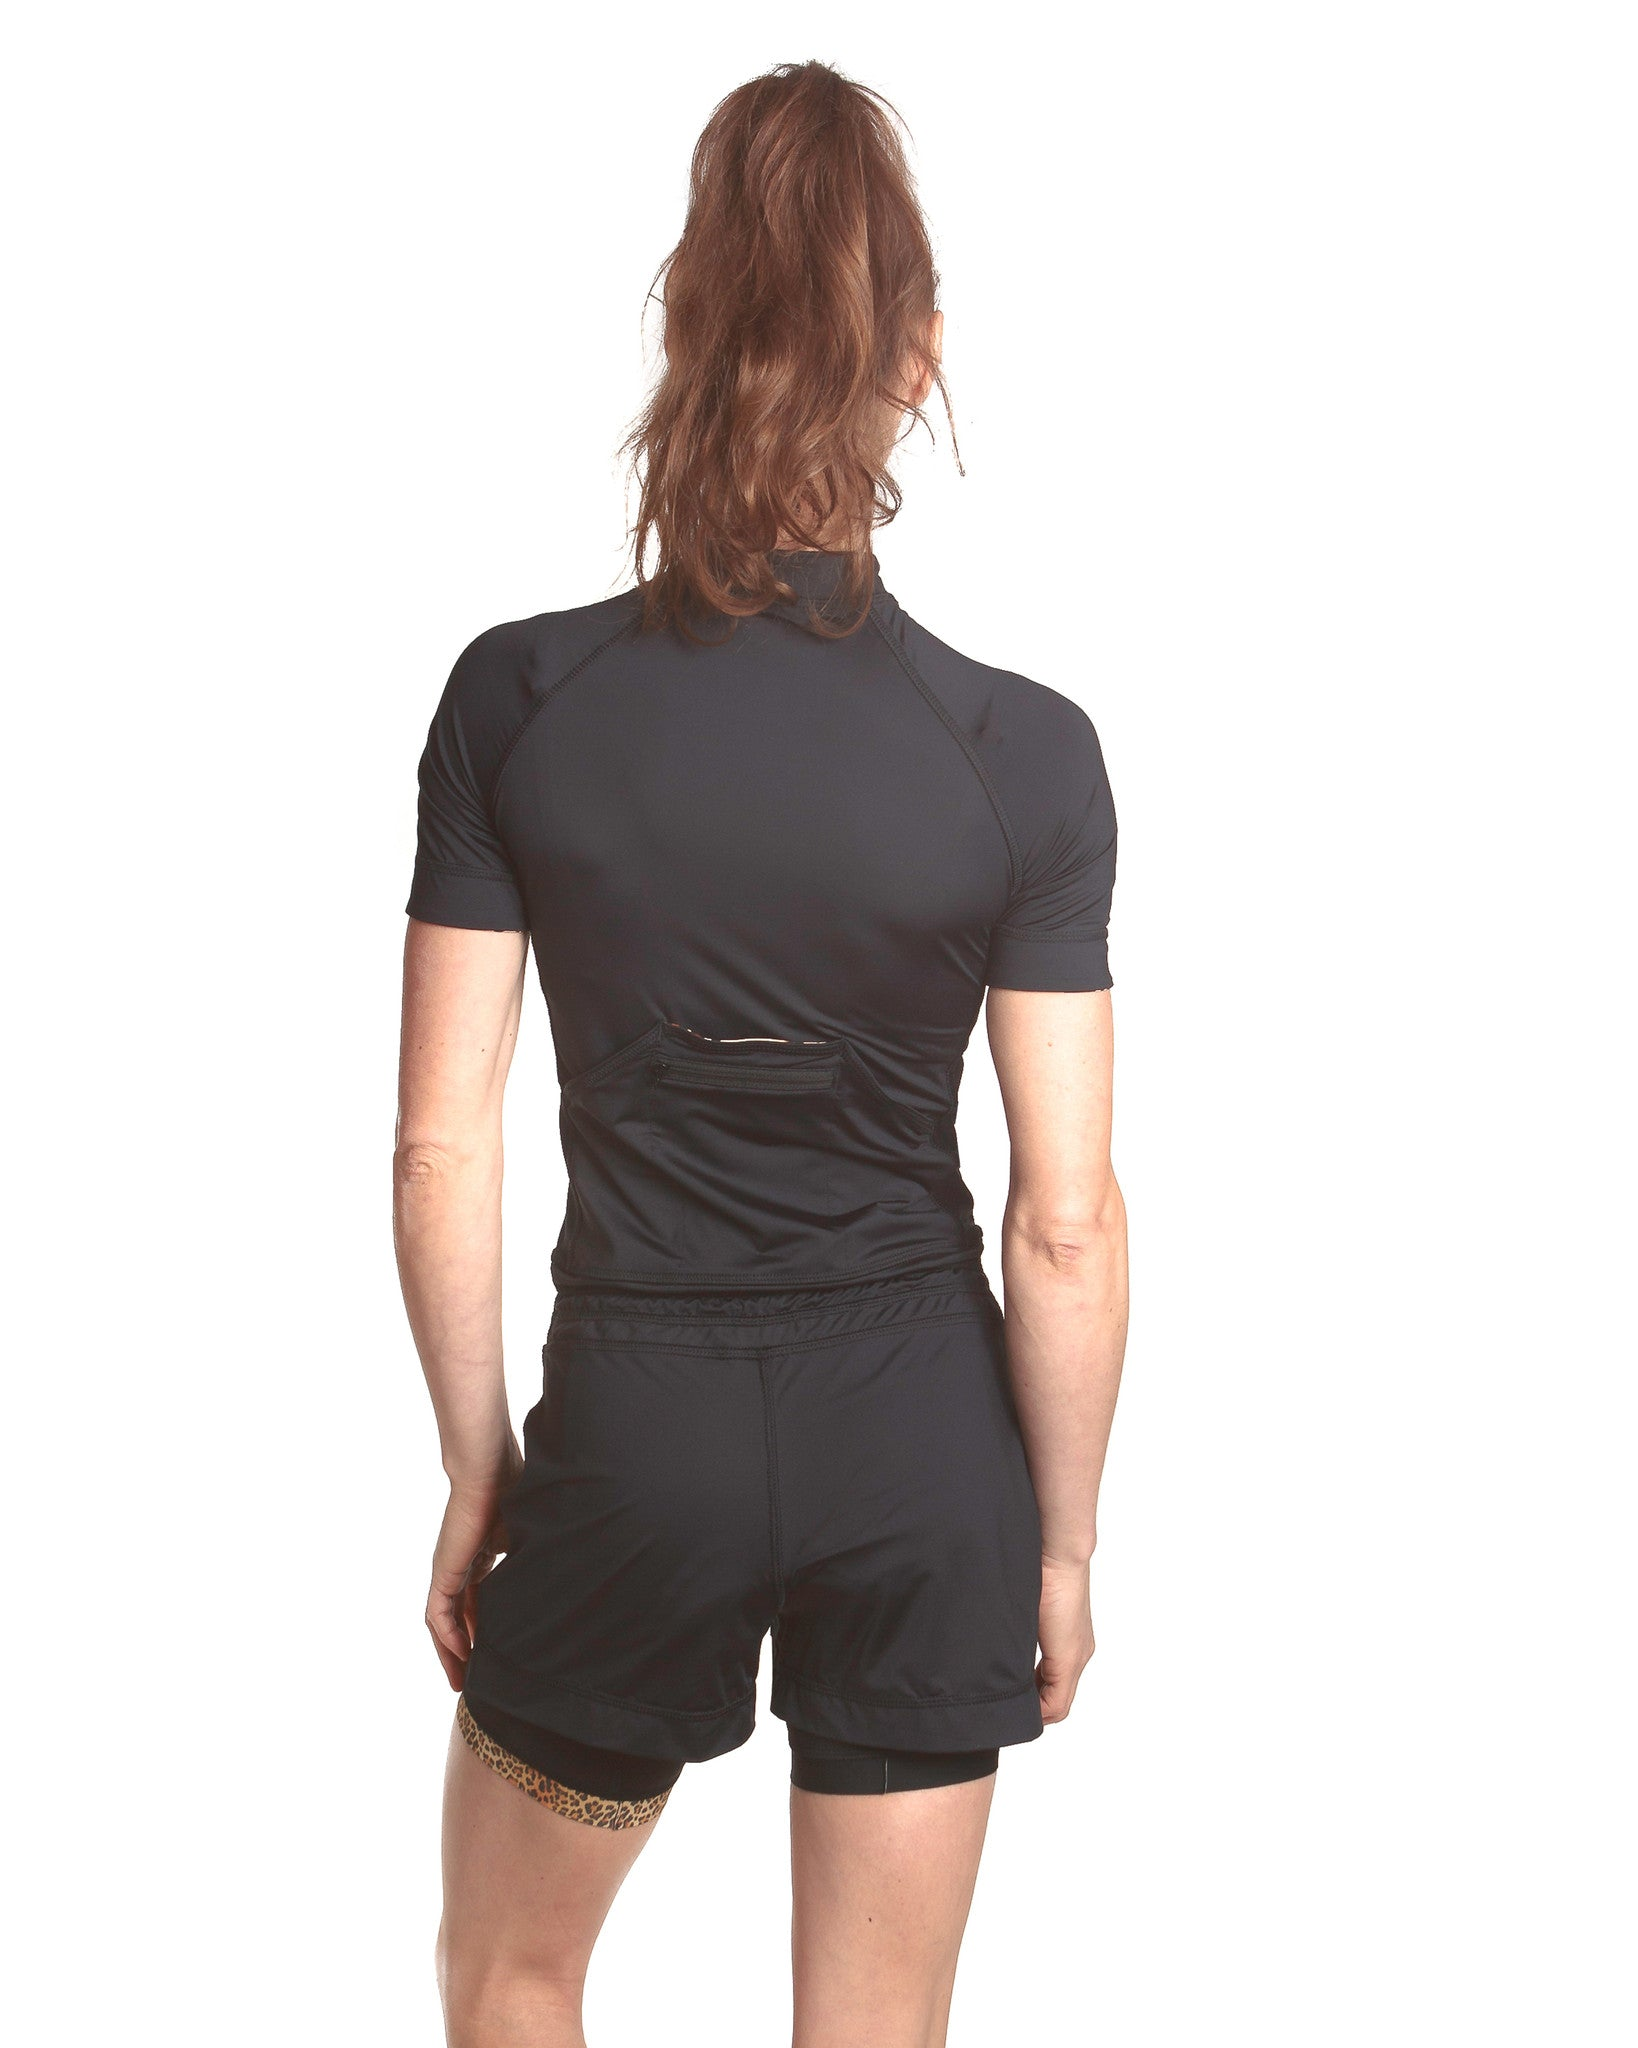 LPRD Black Onesie Jumpsuit | Close-up back view with black cycling shorts